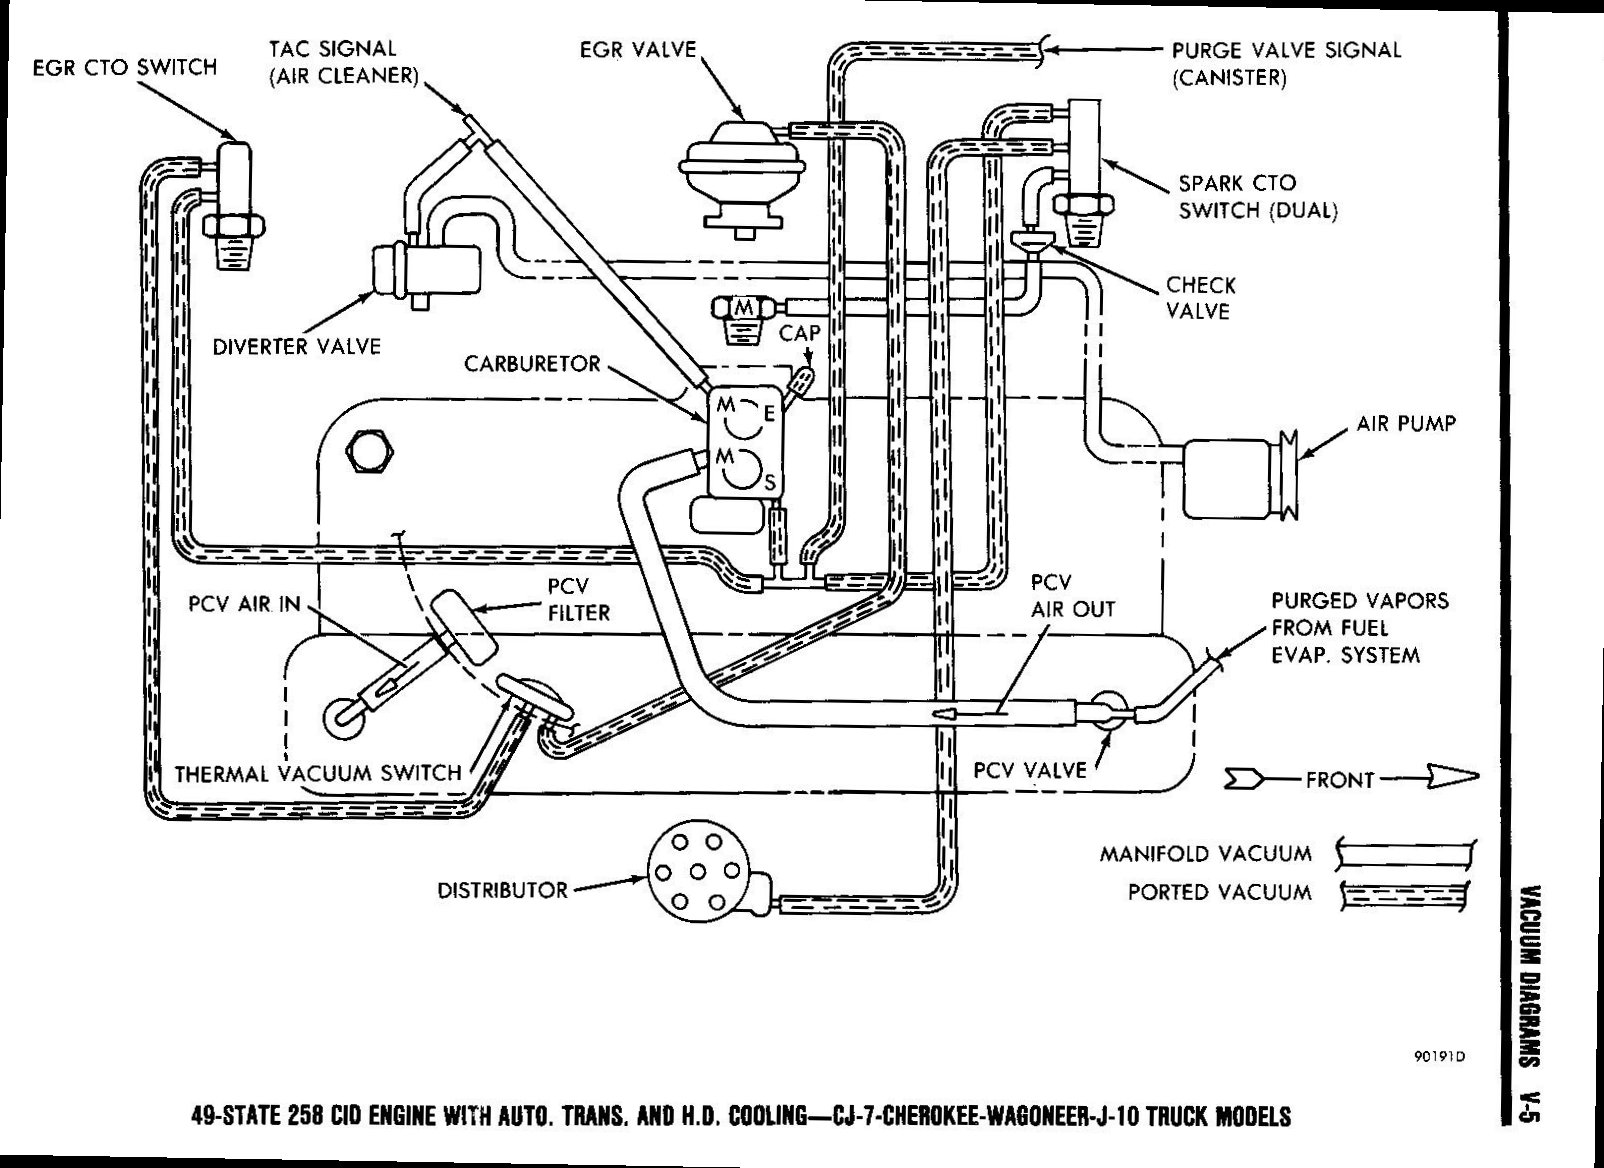 jeep cj7 engine diagram we davidforlife de \u2022 Jeep Commando Wiring Harness likewise jeep cj7 vacuum diagram on 87 jeep yj wiring harness rh 14 14 19 schwangerschafts frage de 1984 jeep cj7 engine diagram jeep cj engine diagram